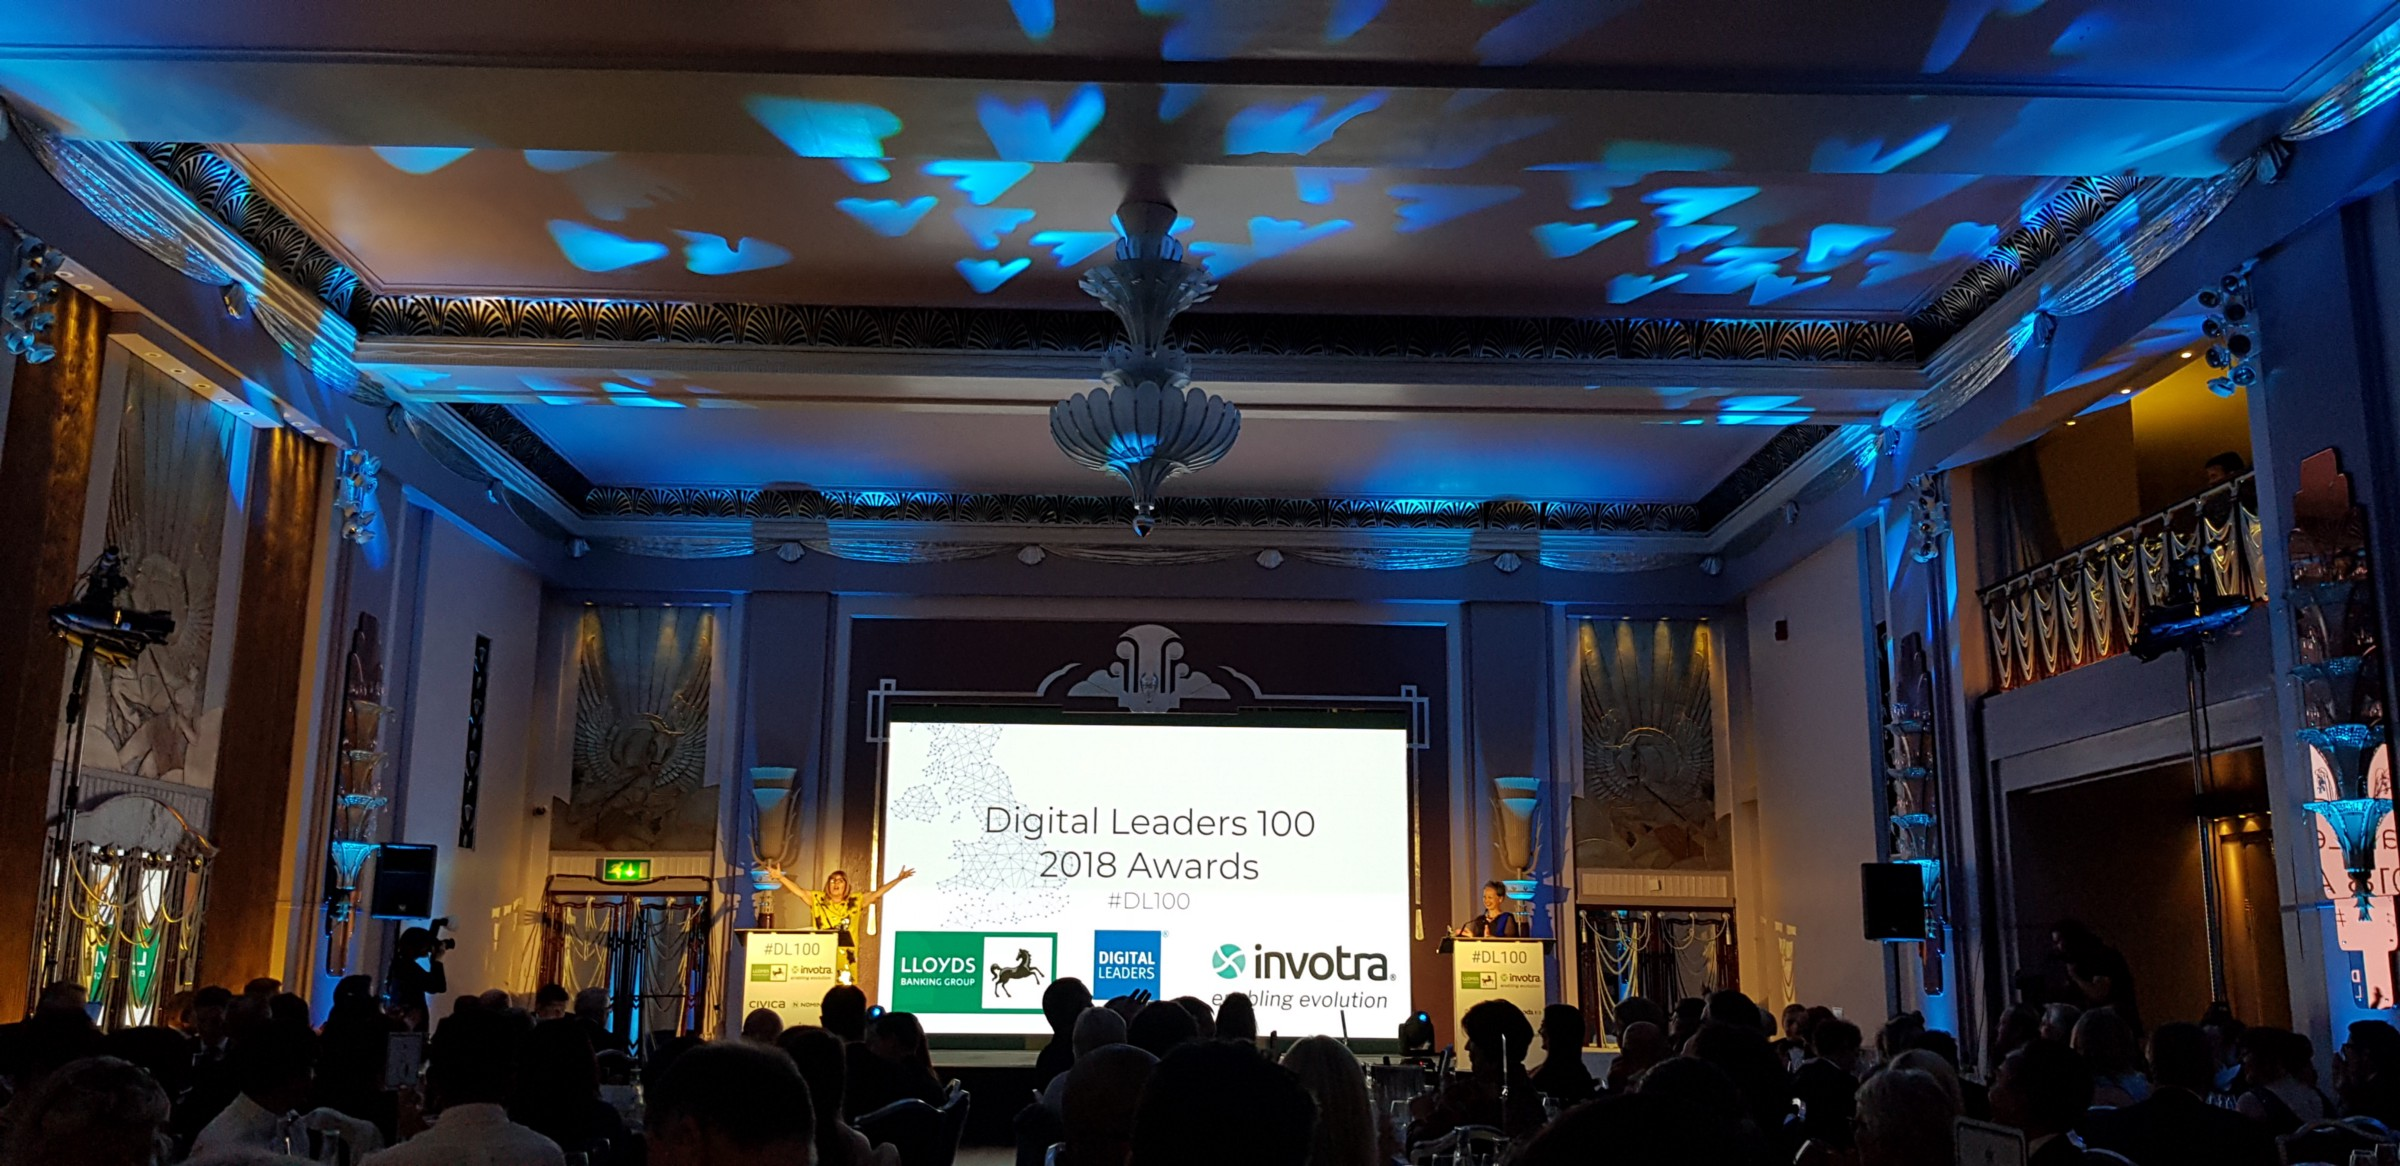 PixelPin in TOP 3 Digital Leaders 100!